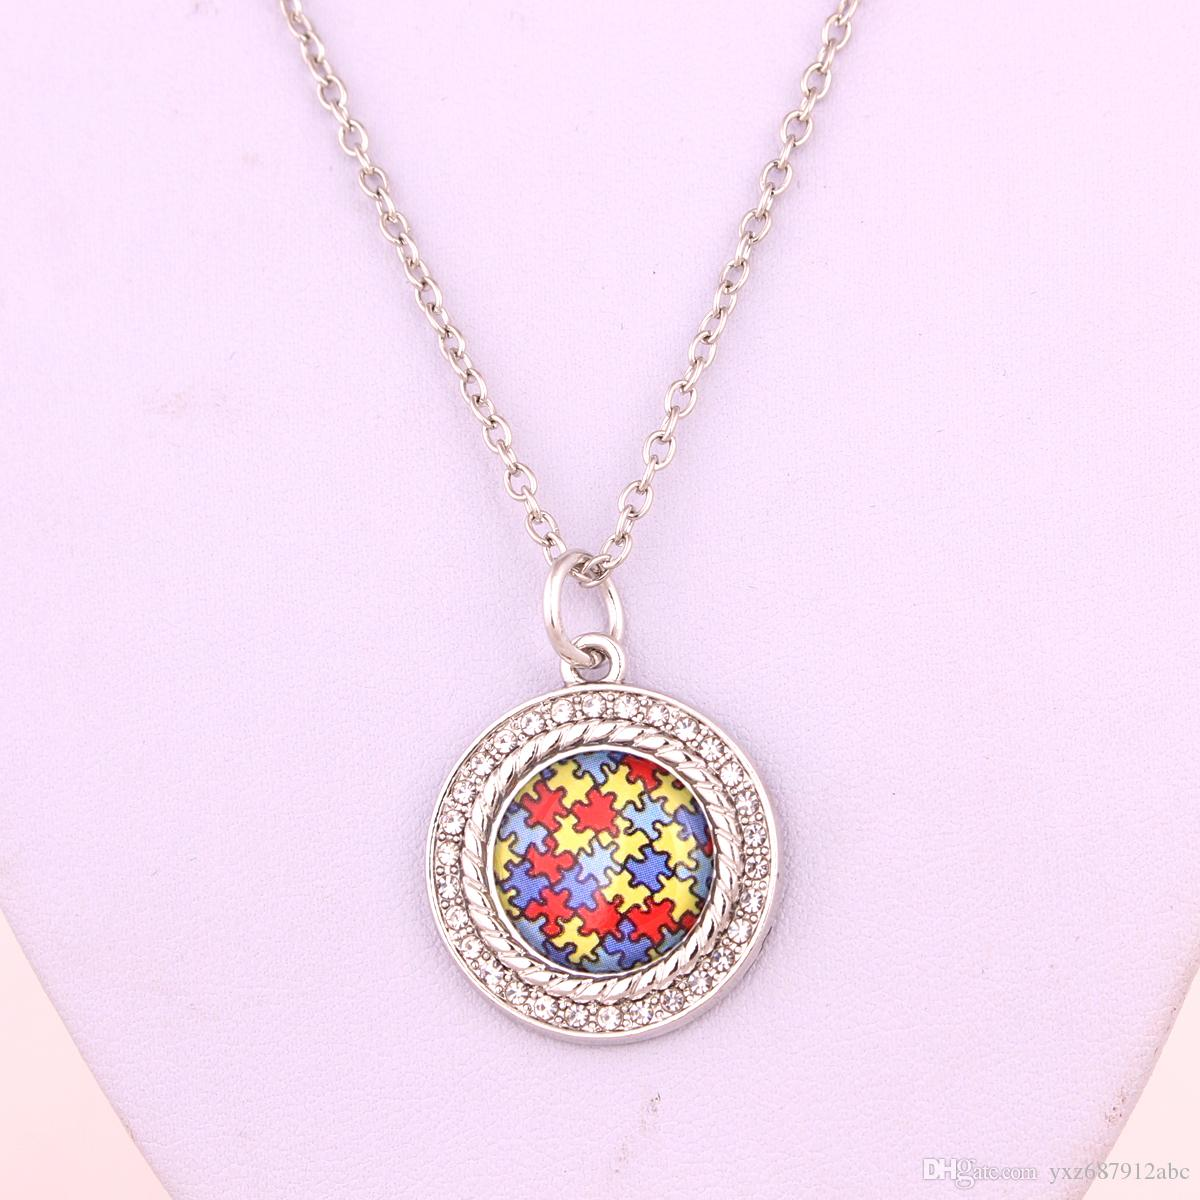 New Arrival Drop Shipping Autism Hope Rhodium Plated Crystal Autism Awareness Puzzle Piece Round Pendant With Link Chain Necklace